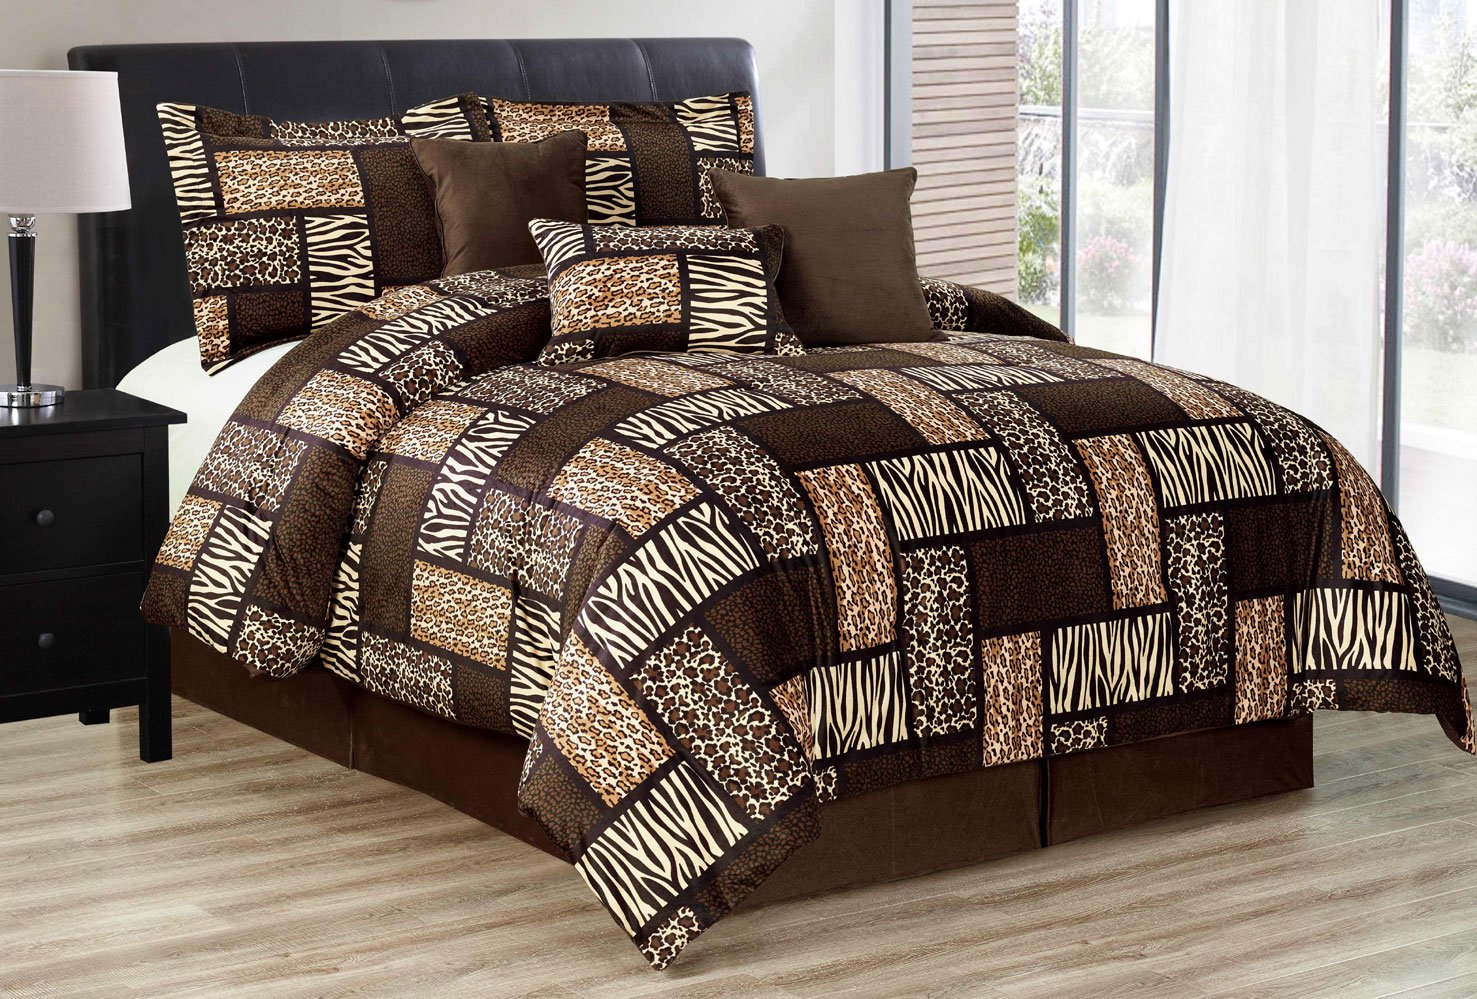 7 Piee KING Size Safari Comforter set - Leopard, Tiger Zebra, Etc - Multi Animal Print Bed in a Bag Brown Black Beige Micro Fur Bedding